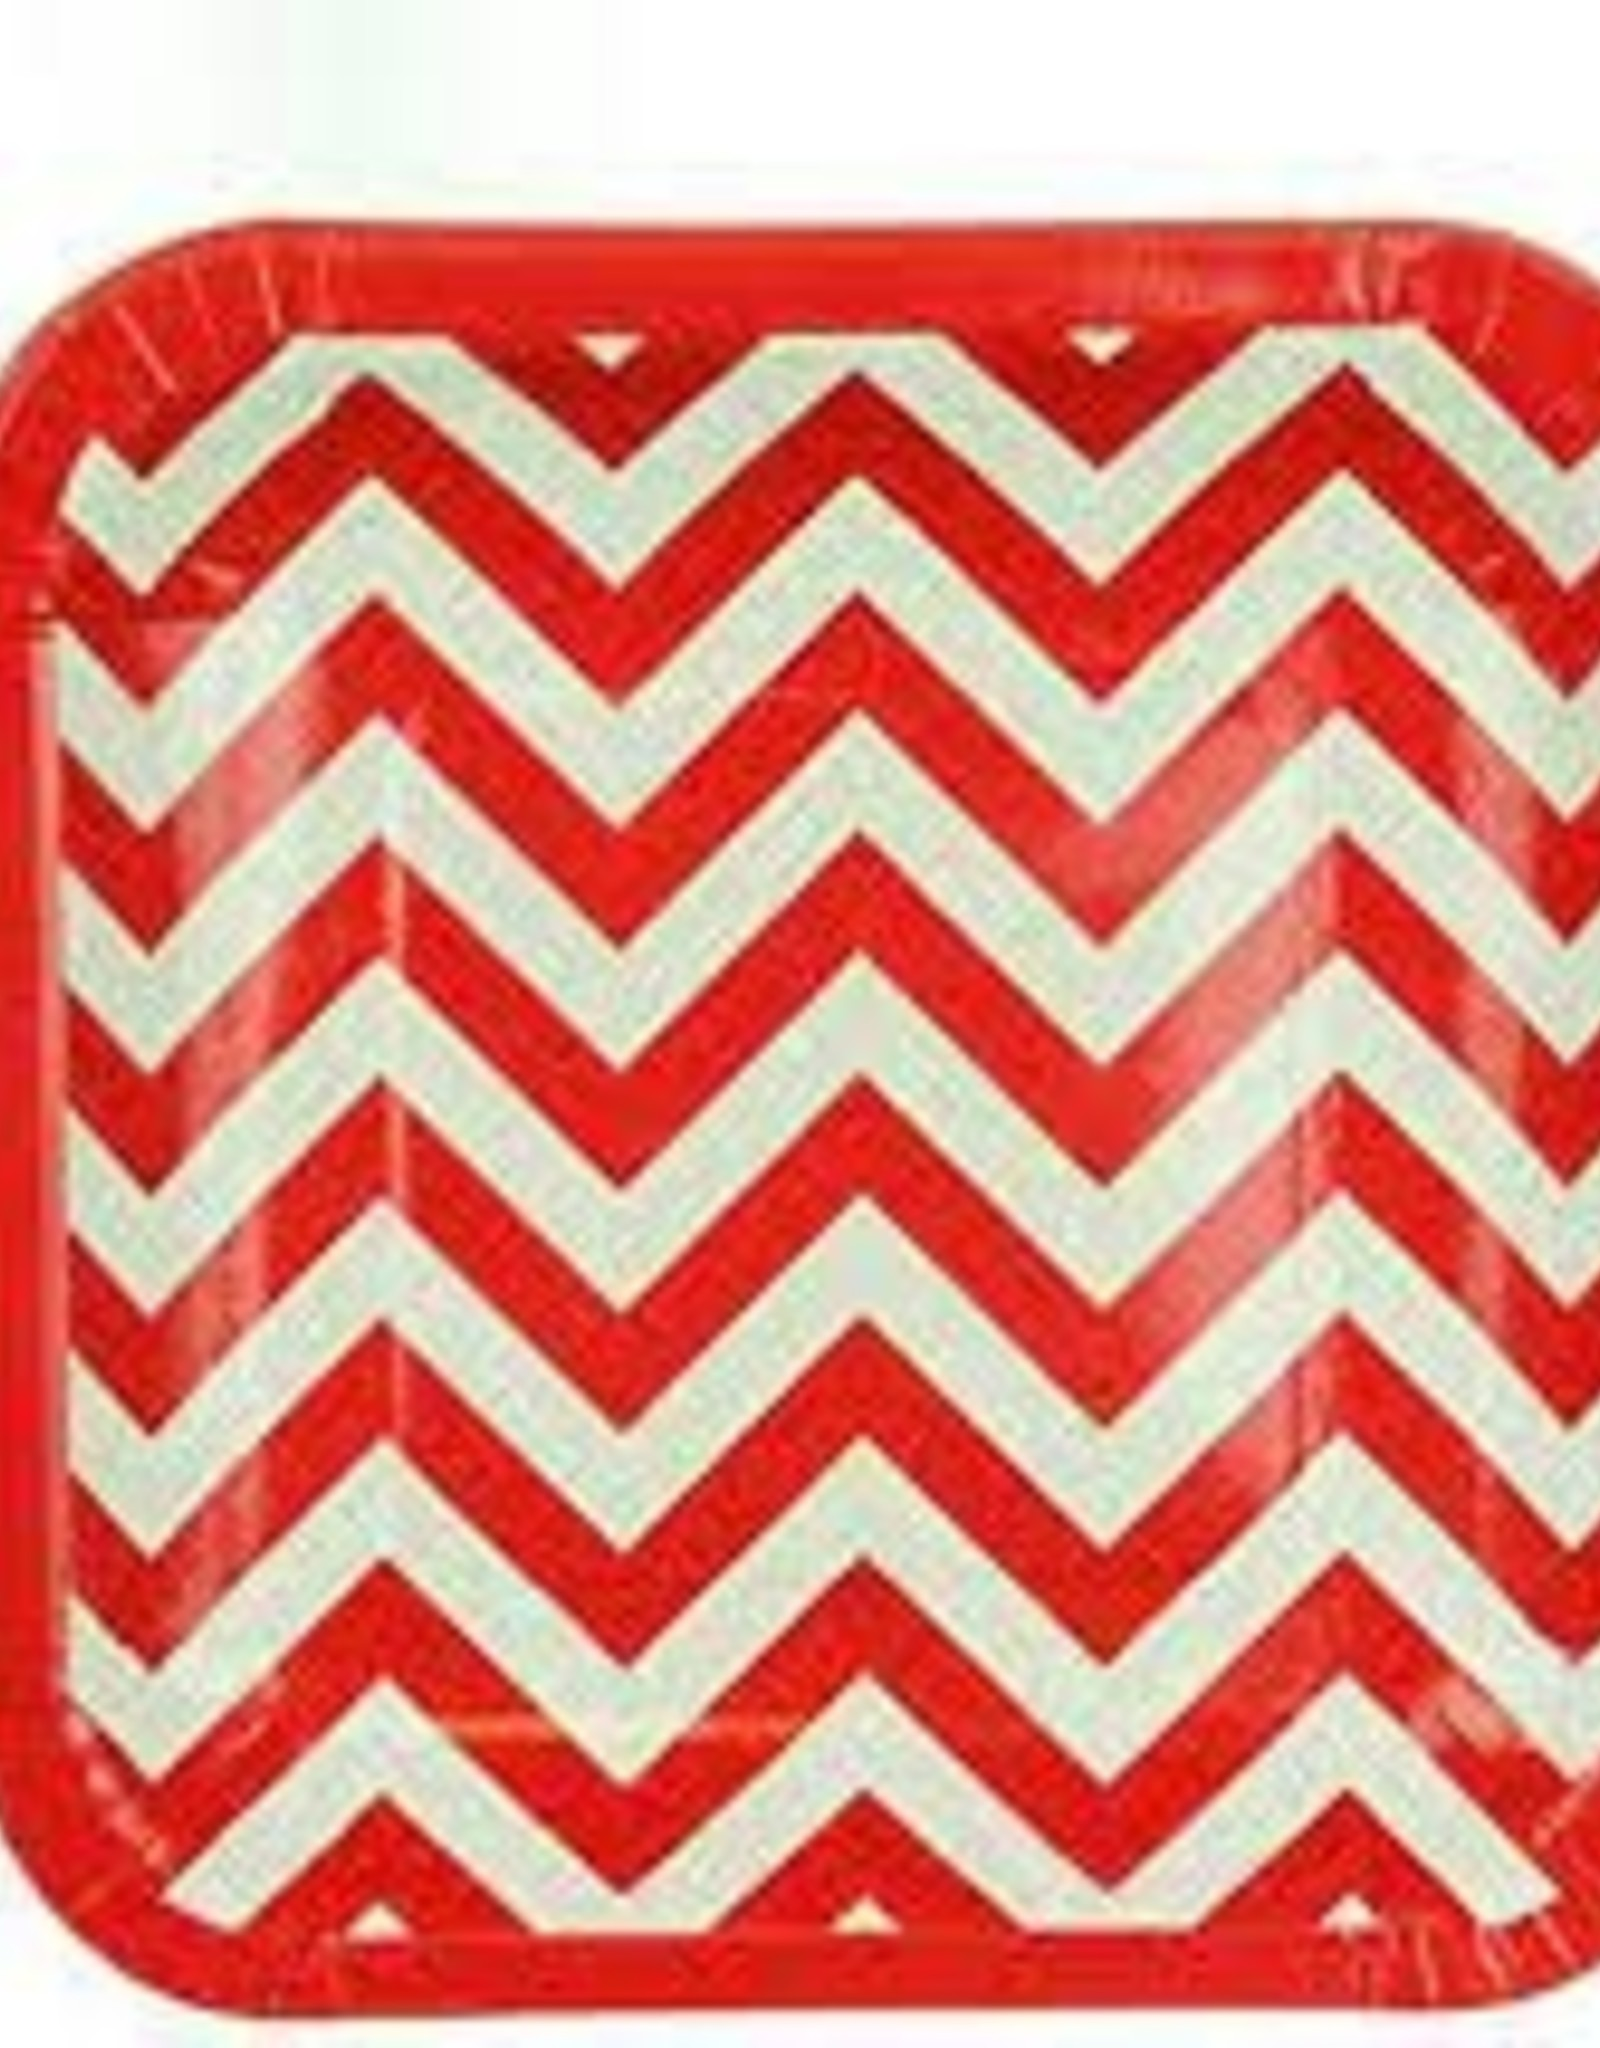 Wallys party factory Red Chevron Paper Plates Square